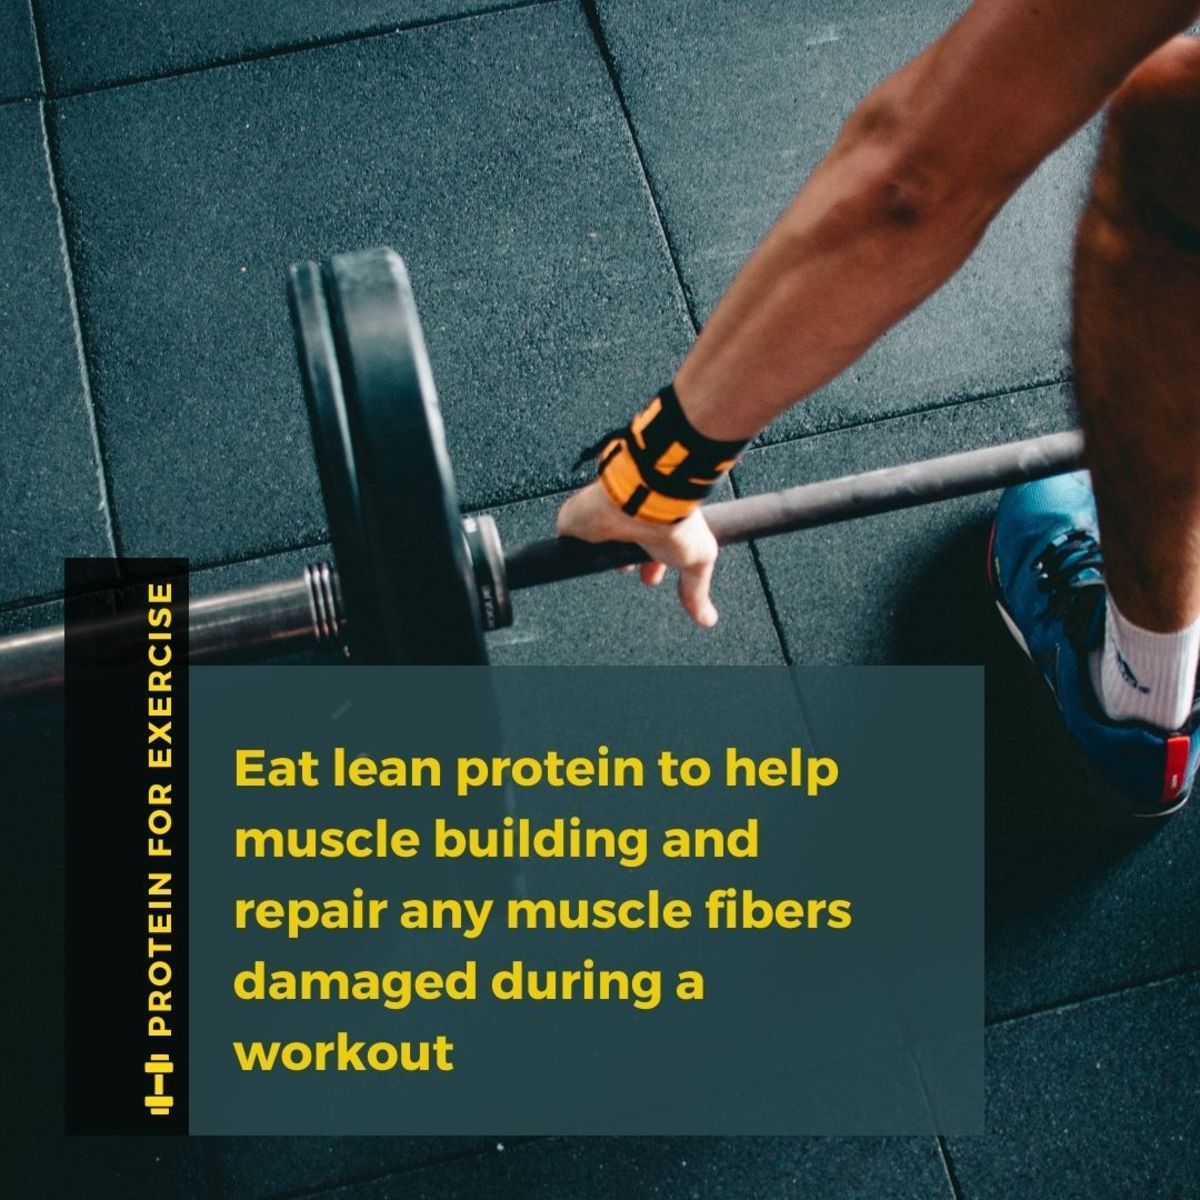 Protein is essential to repair muscle damaged during exercise